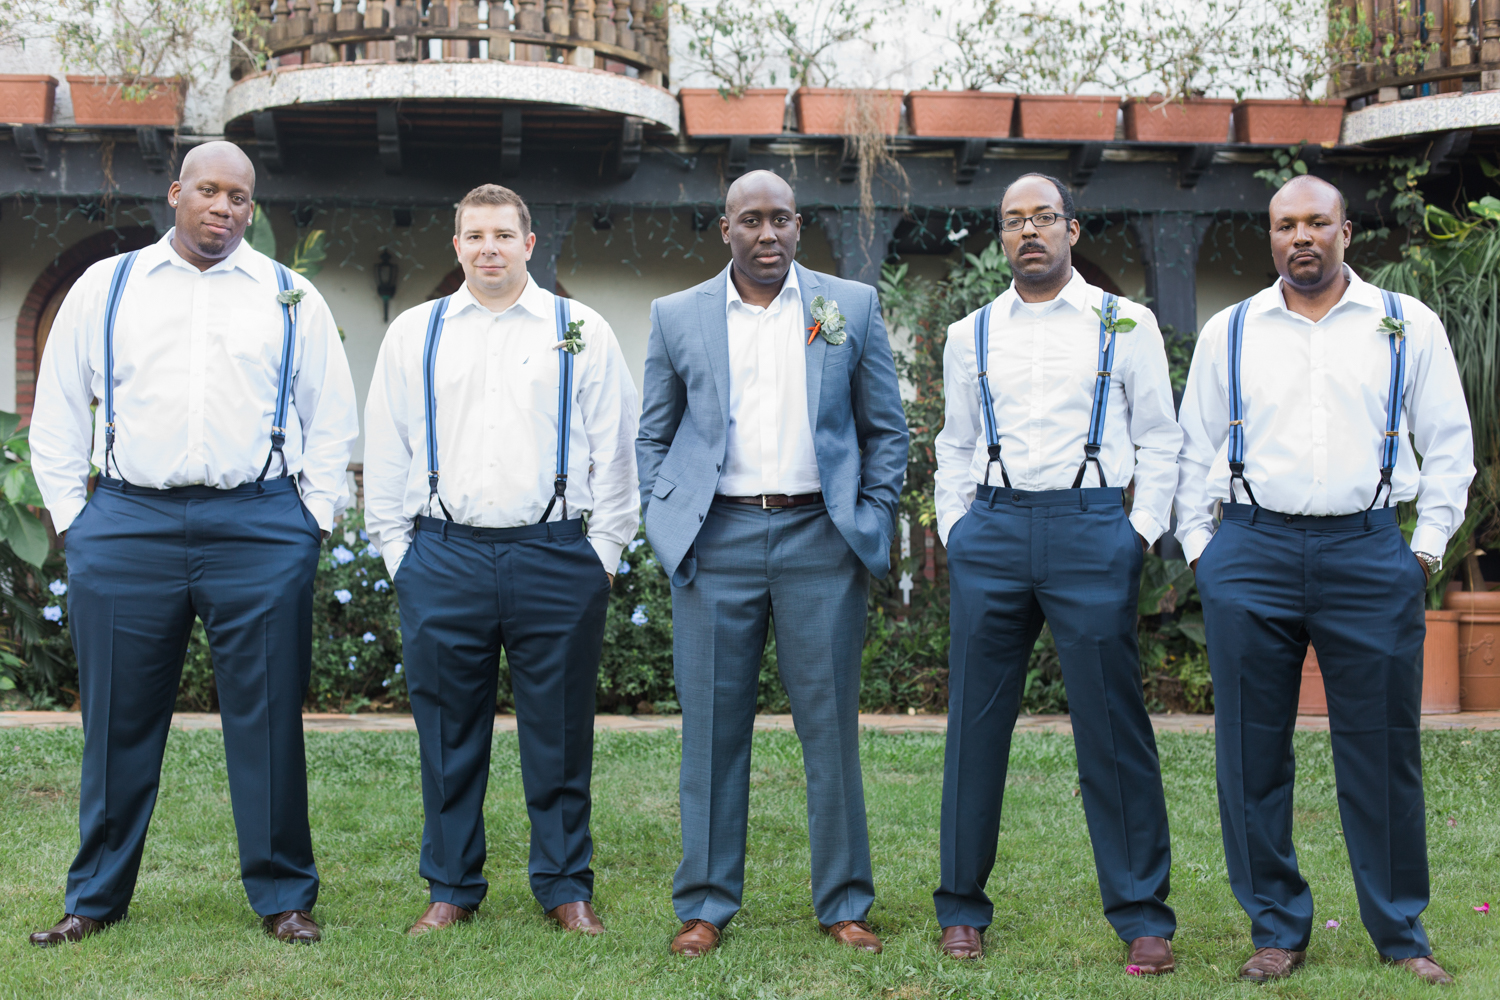 Marlon+Stacy_Bridal Party-0012.jpg